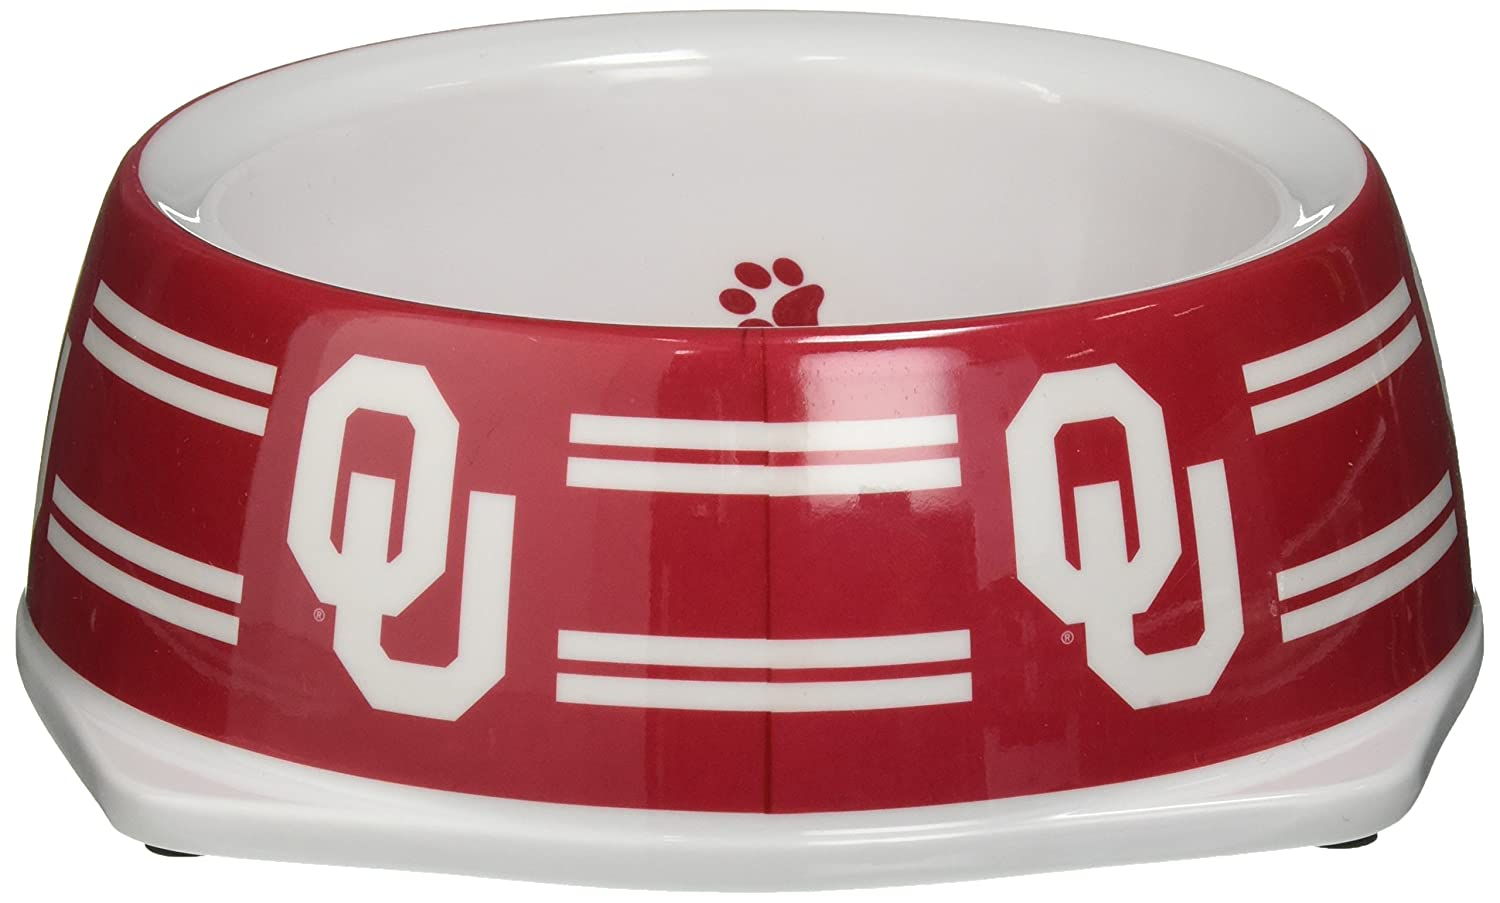 2 in 21 NCAA Teams Sporty K9 Dog Bowl - Durable Sports PET Bowls for Dogs /& Cats - NCAA Licensed Feeding Bowl - Football//Basketball Feeding /& Watering Dog /& Cats Bowl